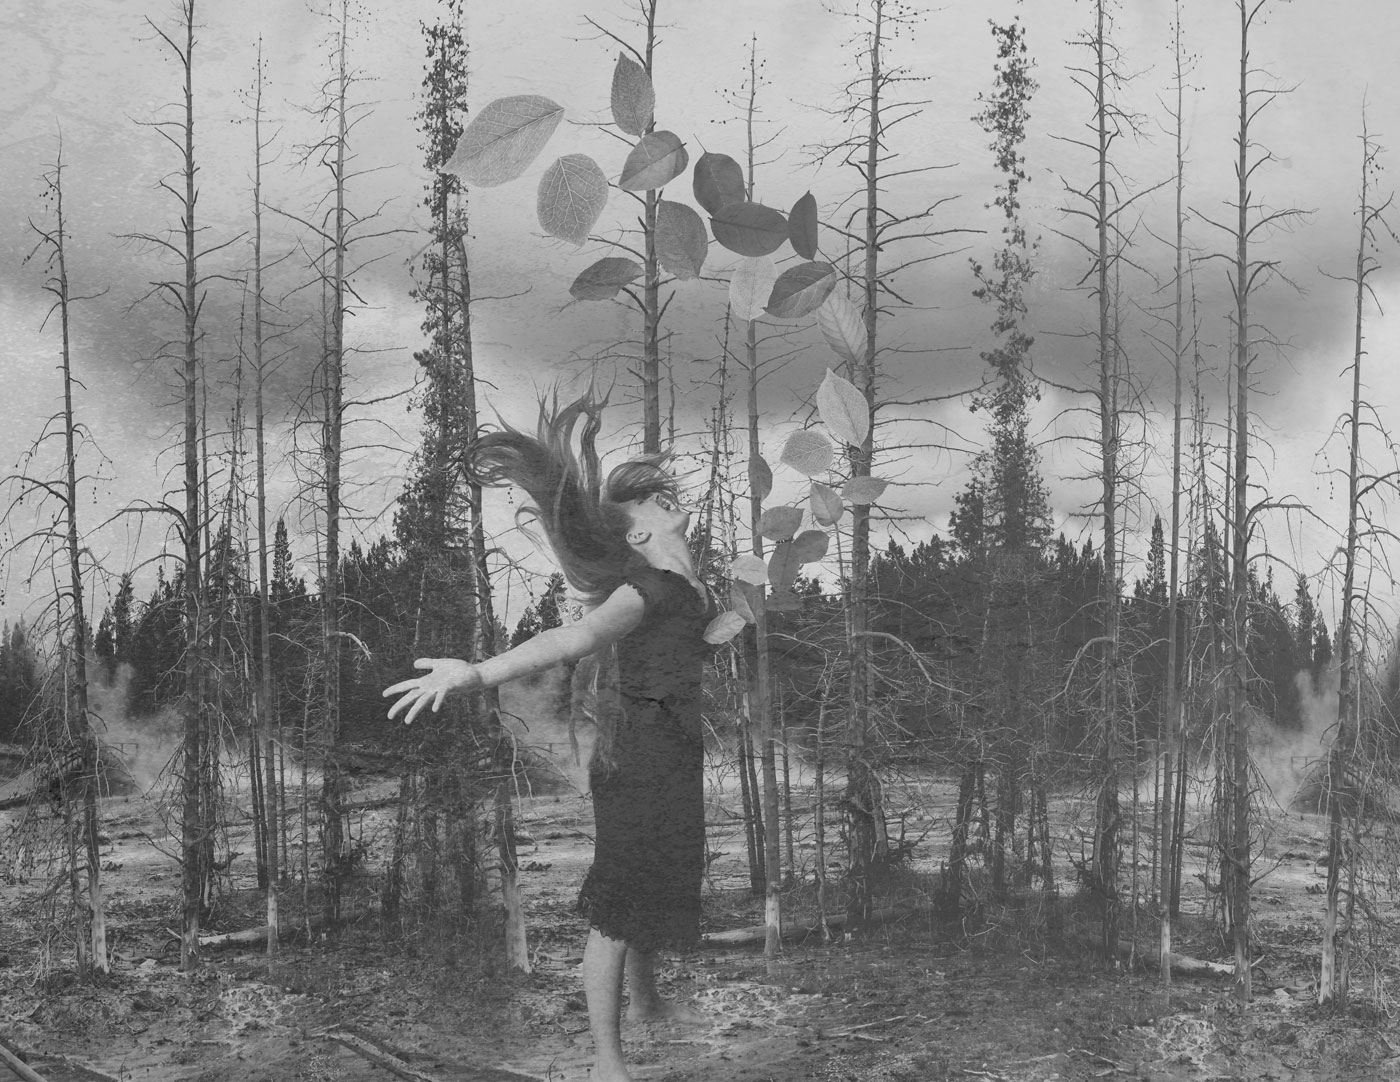 A girl standing among flooded saplings throws back her head, her hair flying, arms spread wide, as dozens of leaves burst from her chest.